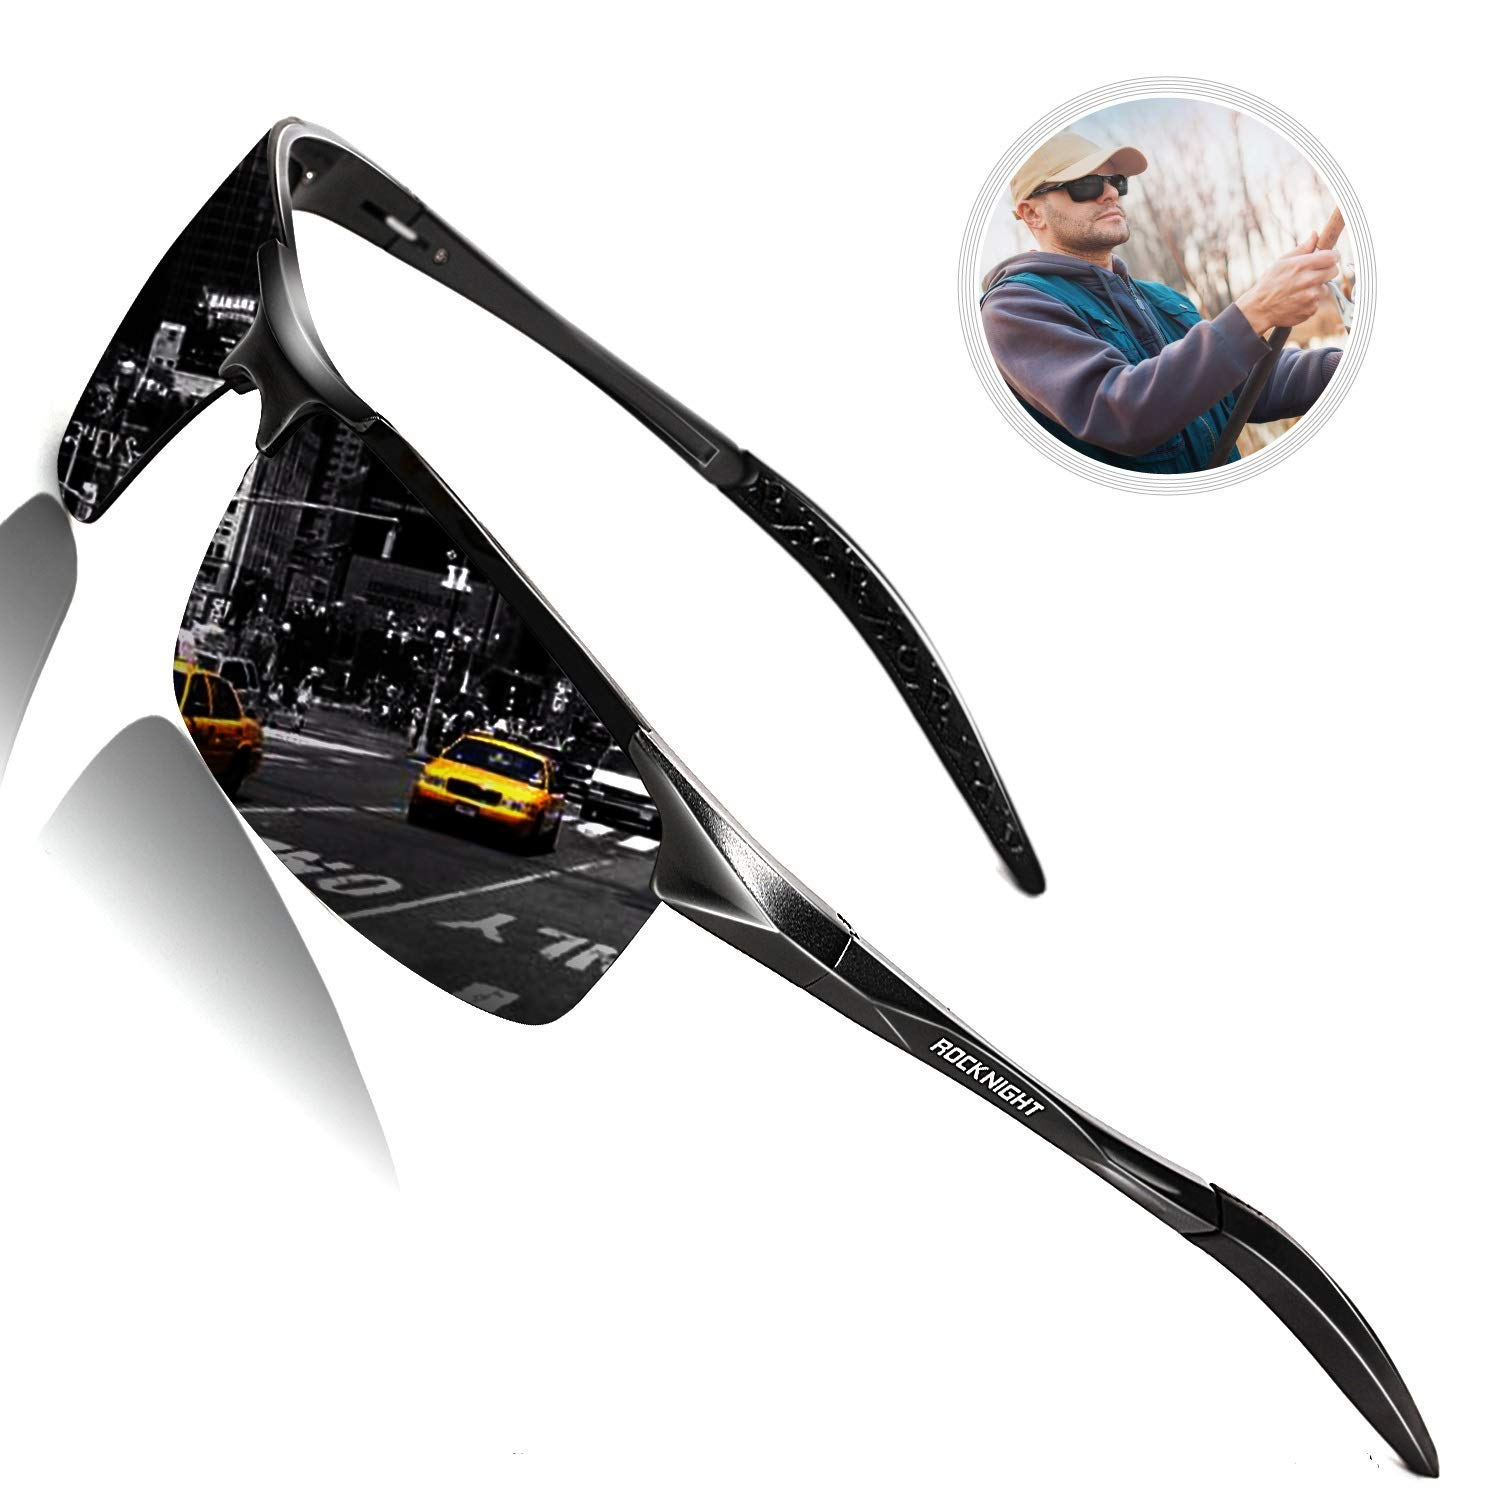 ROCKNIGHT Mens Sunglasses Polarized UV400 Sunglasses for Hiking Rimless Sunglasses for Men Sports Sunglasses Al-Mg Metal Outdoor Fishing Golf by ROCKNIGHT